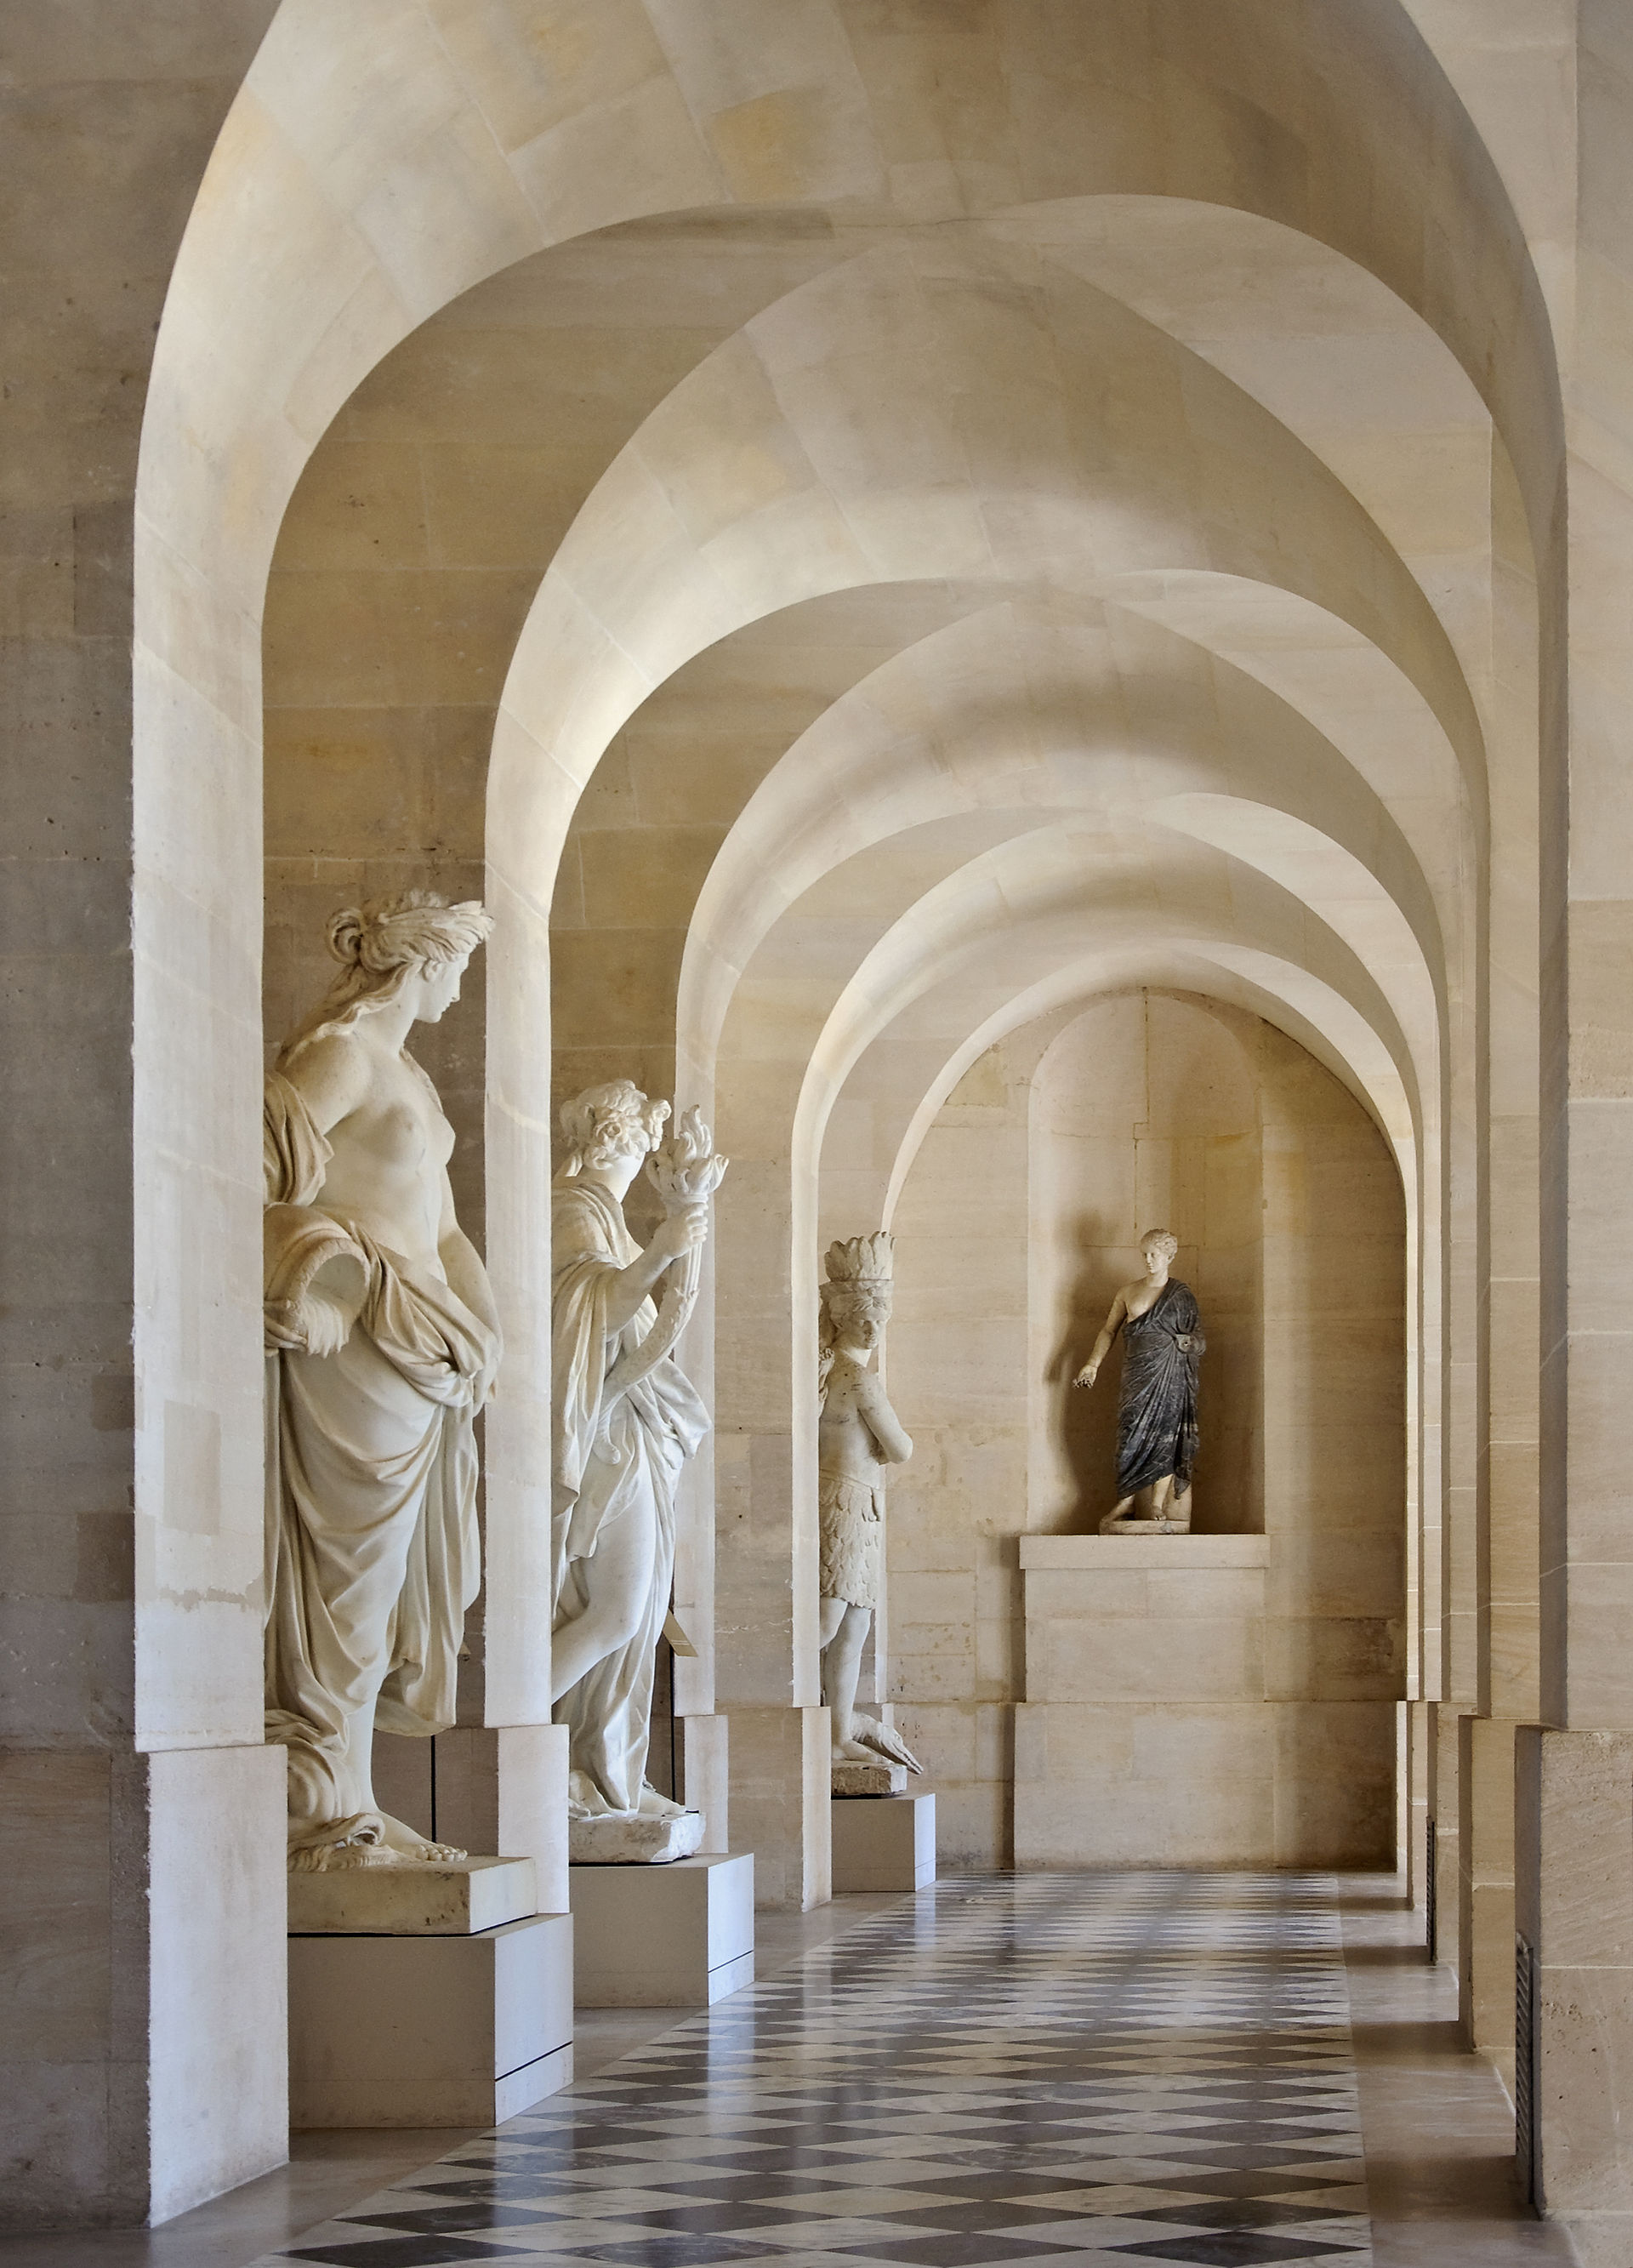 Galerie wikip dia for Architecture commerciale definition